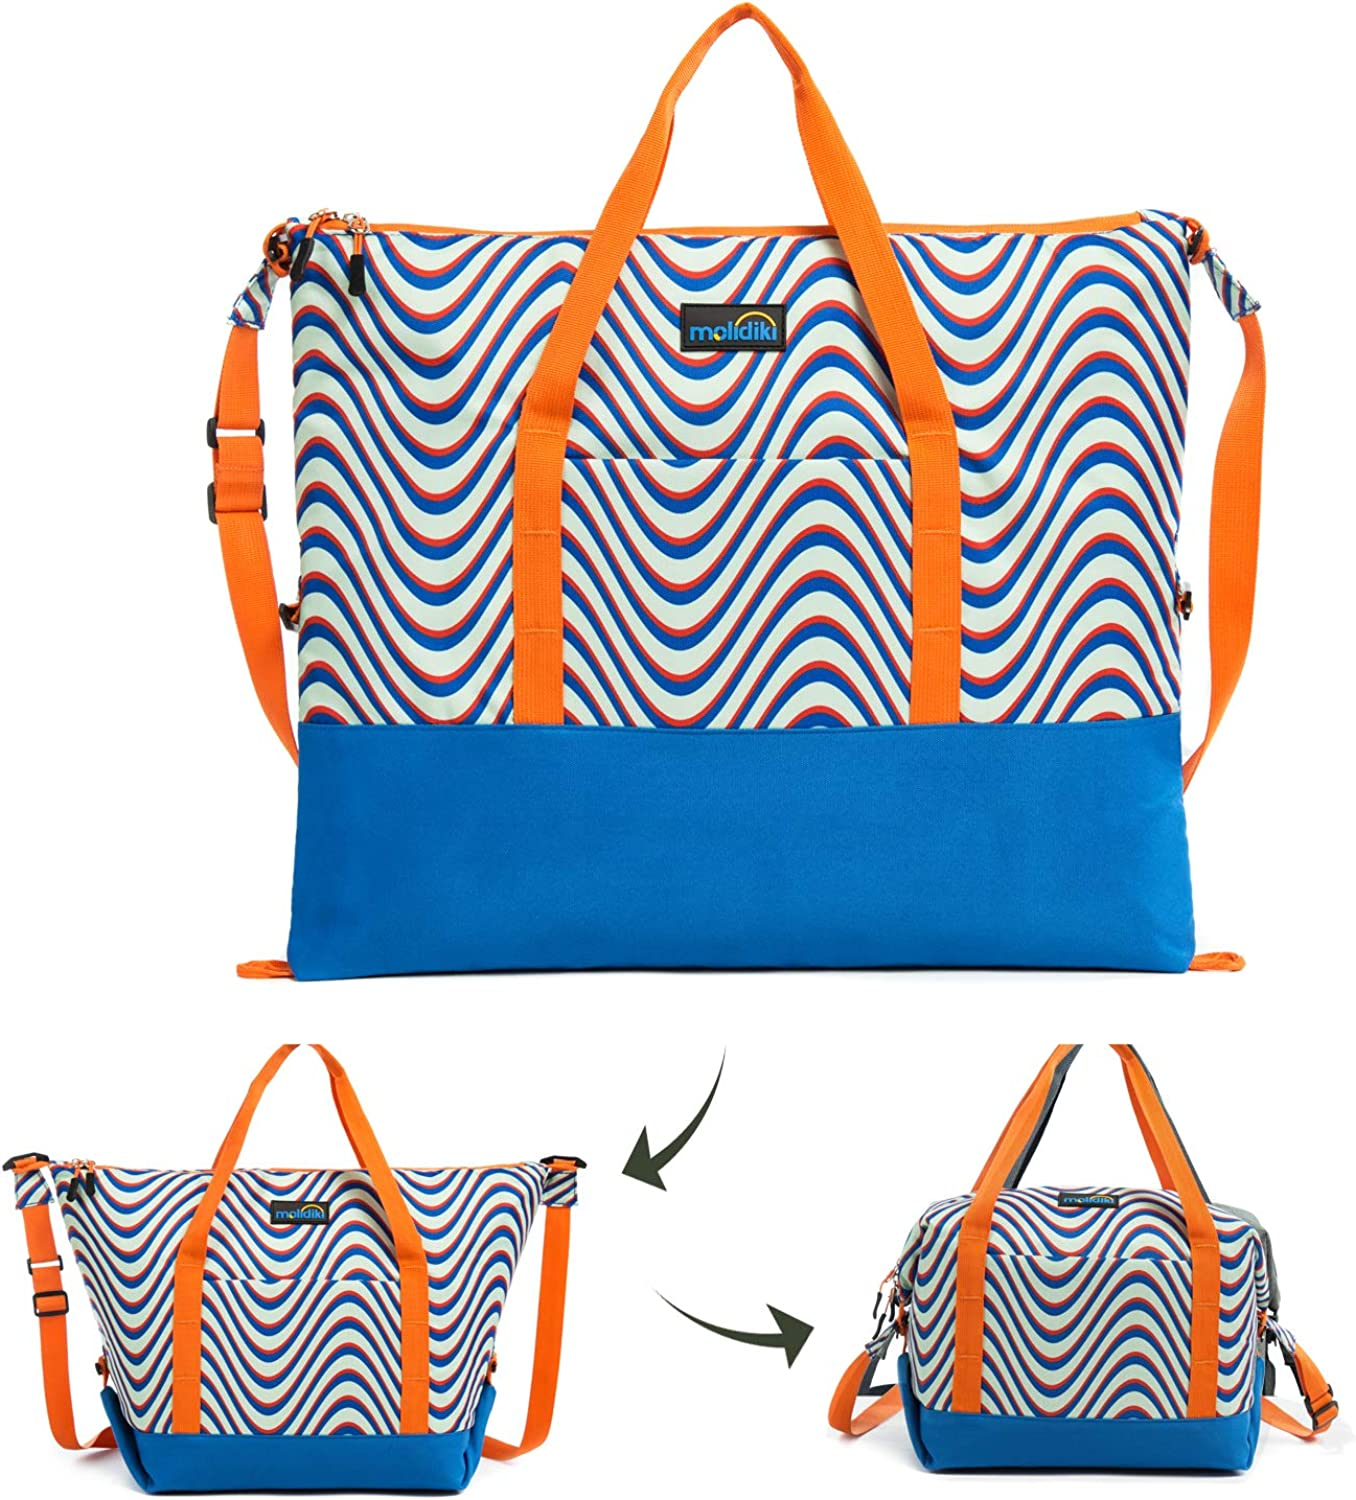 Insulated Grocery Shopping Bag, Reusable Thermal Tote Bag, Collapsible,